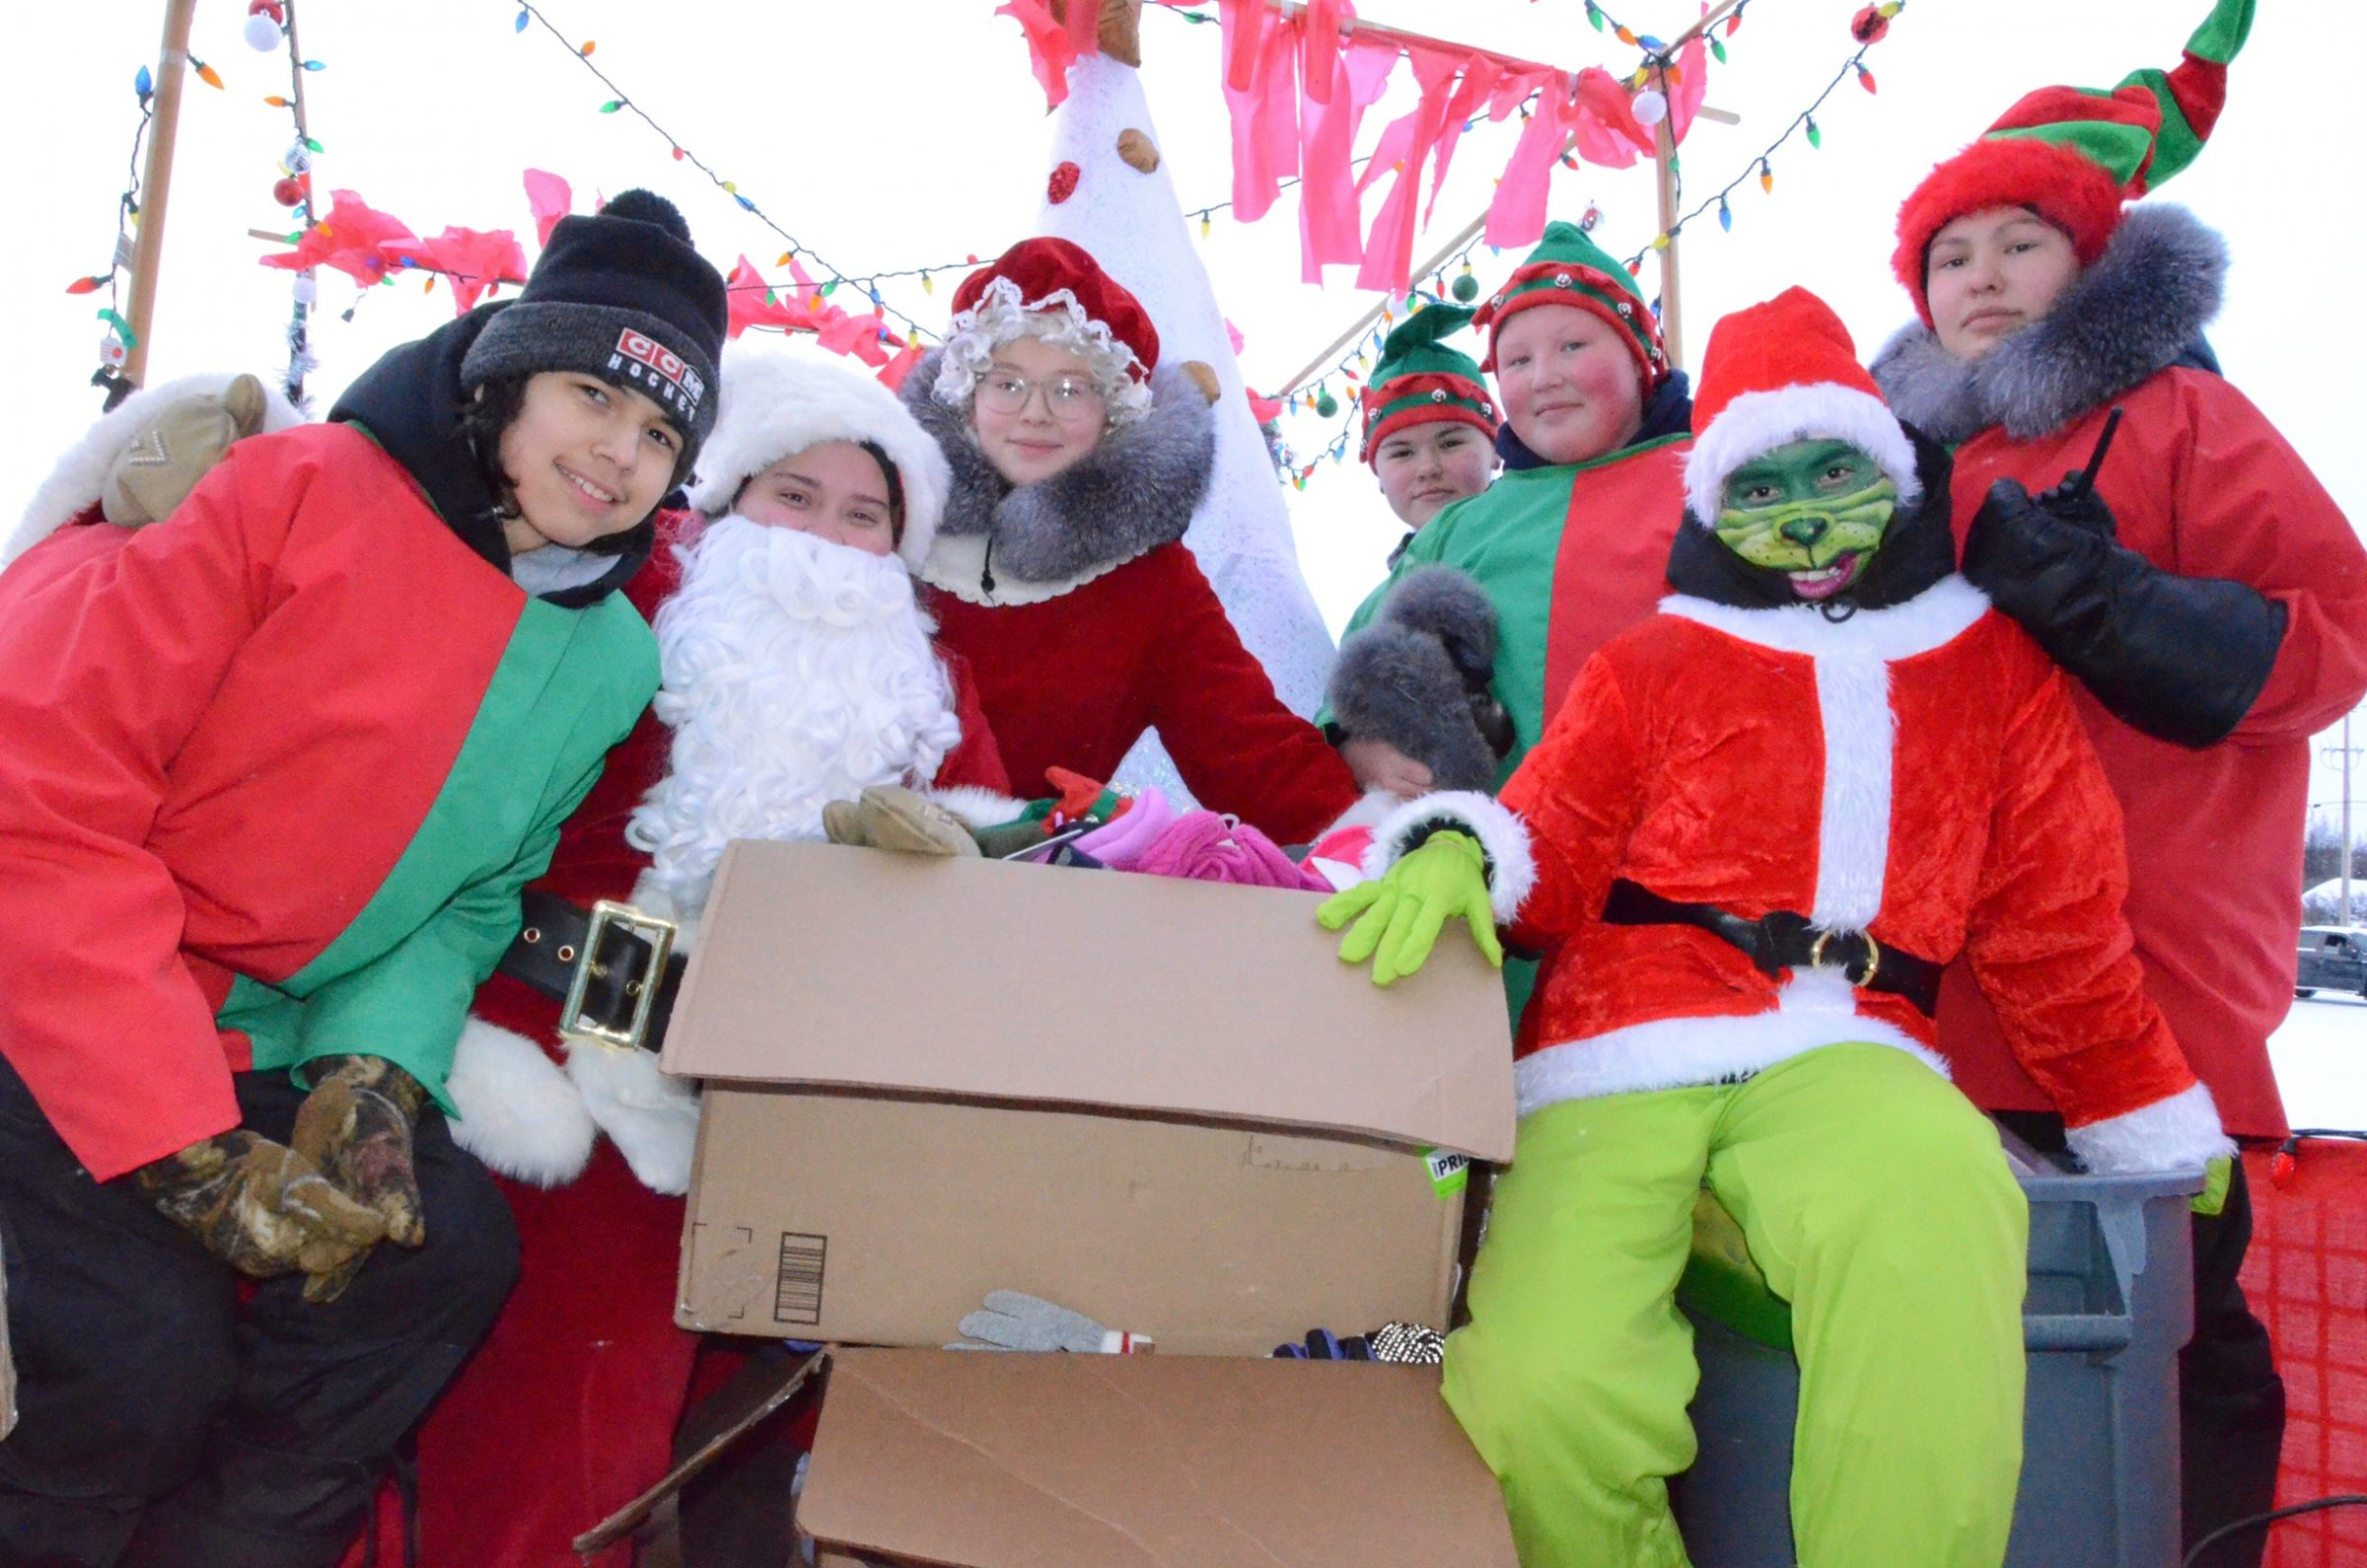 Santa Claus, his helpers and the Grinch paid a visit to Kuujjuaq on Sunday, Dec. 20. (Photo by Isabelle Dubois)